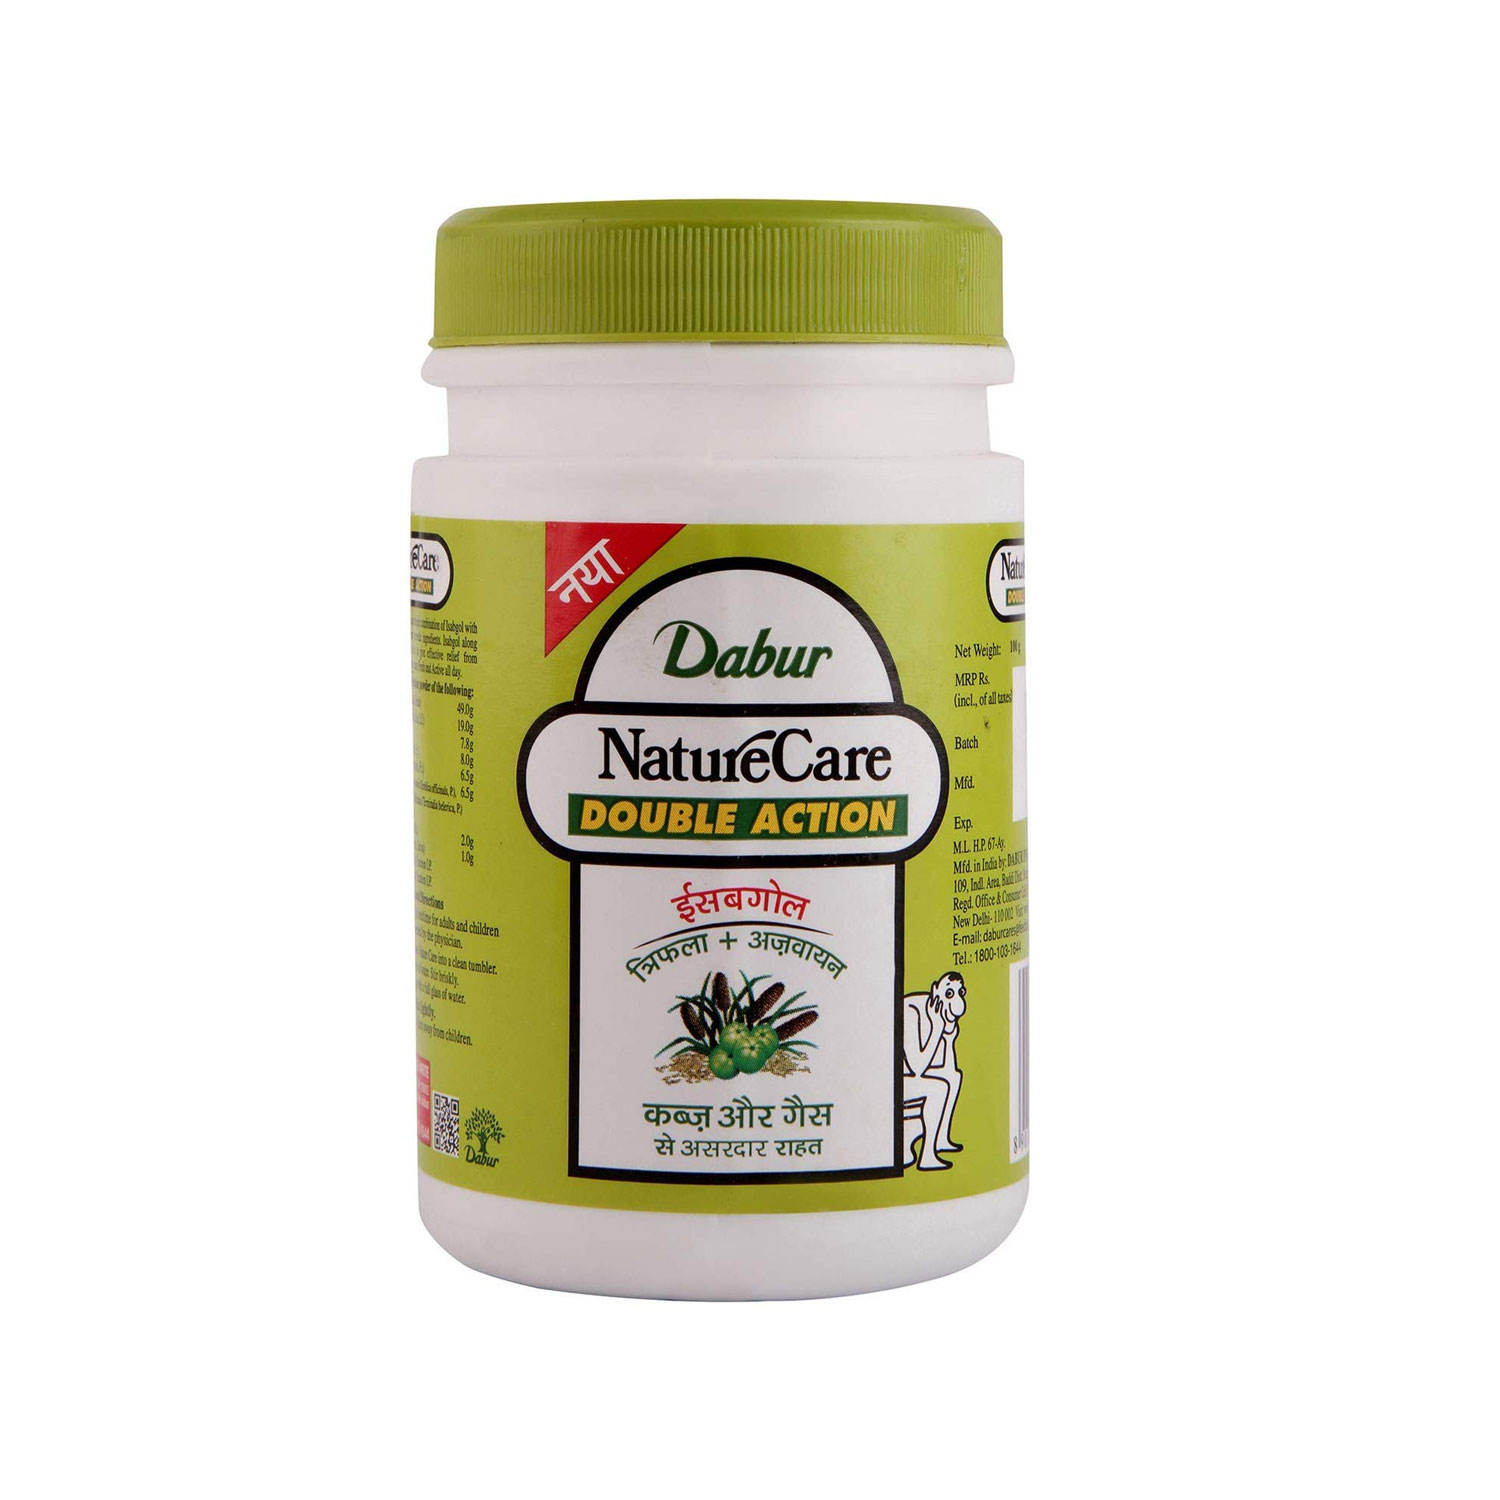 Ayurvedic Medicine for Gas & Constipation: Dabur Nature Care Double Action